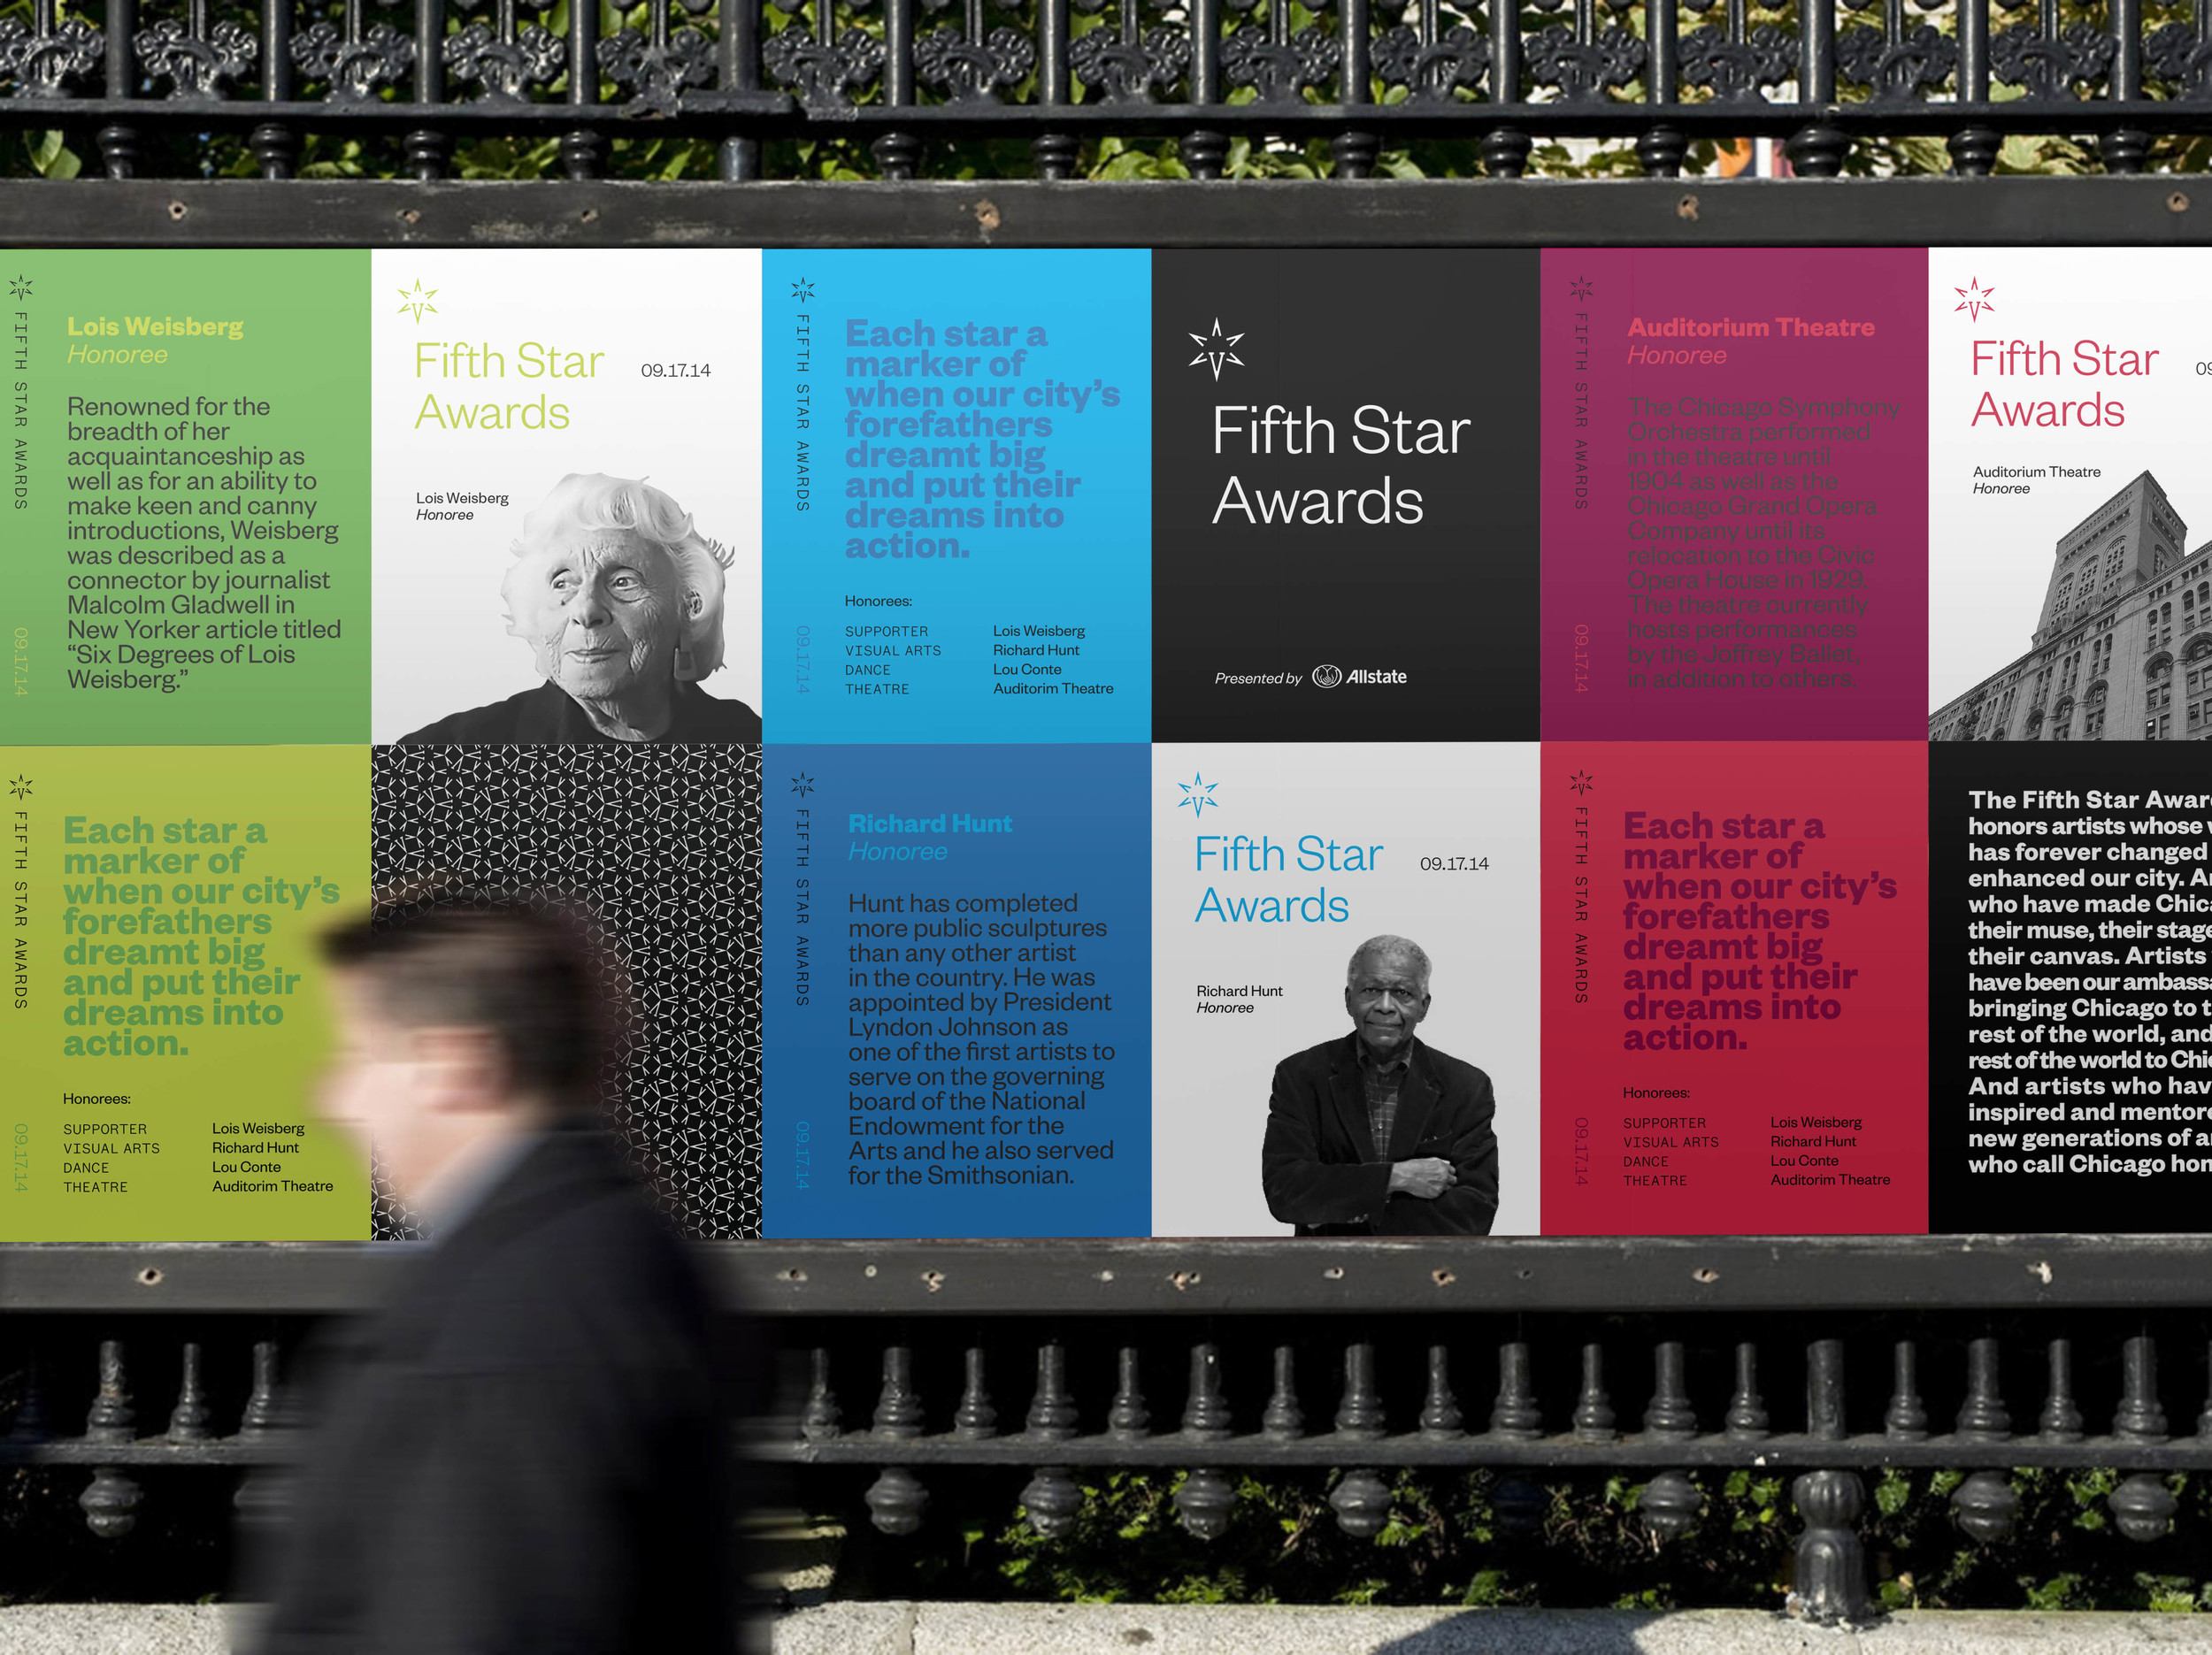 fifth_star_awards_posters_cm_031314.jpg